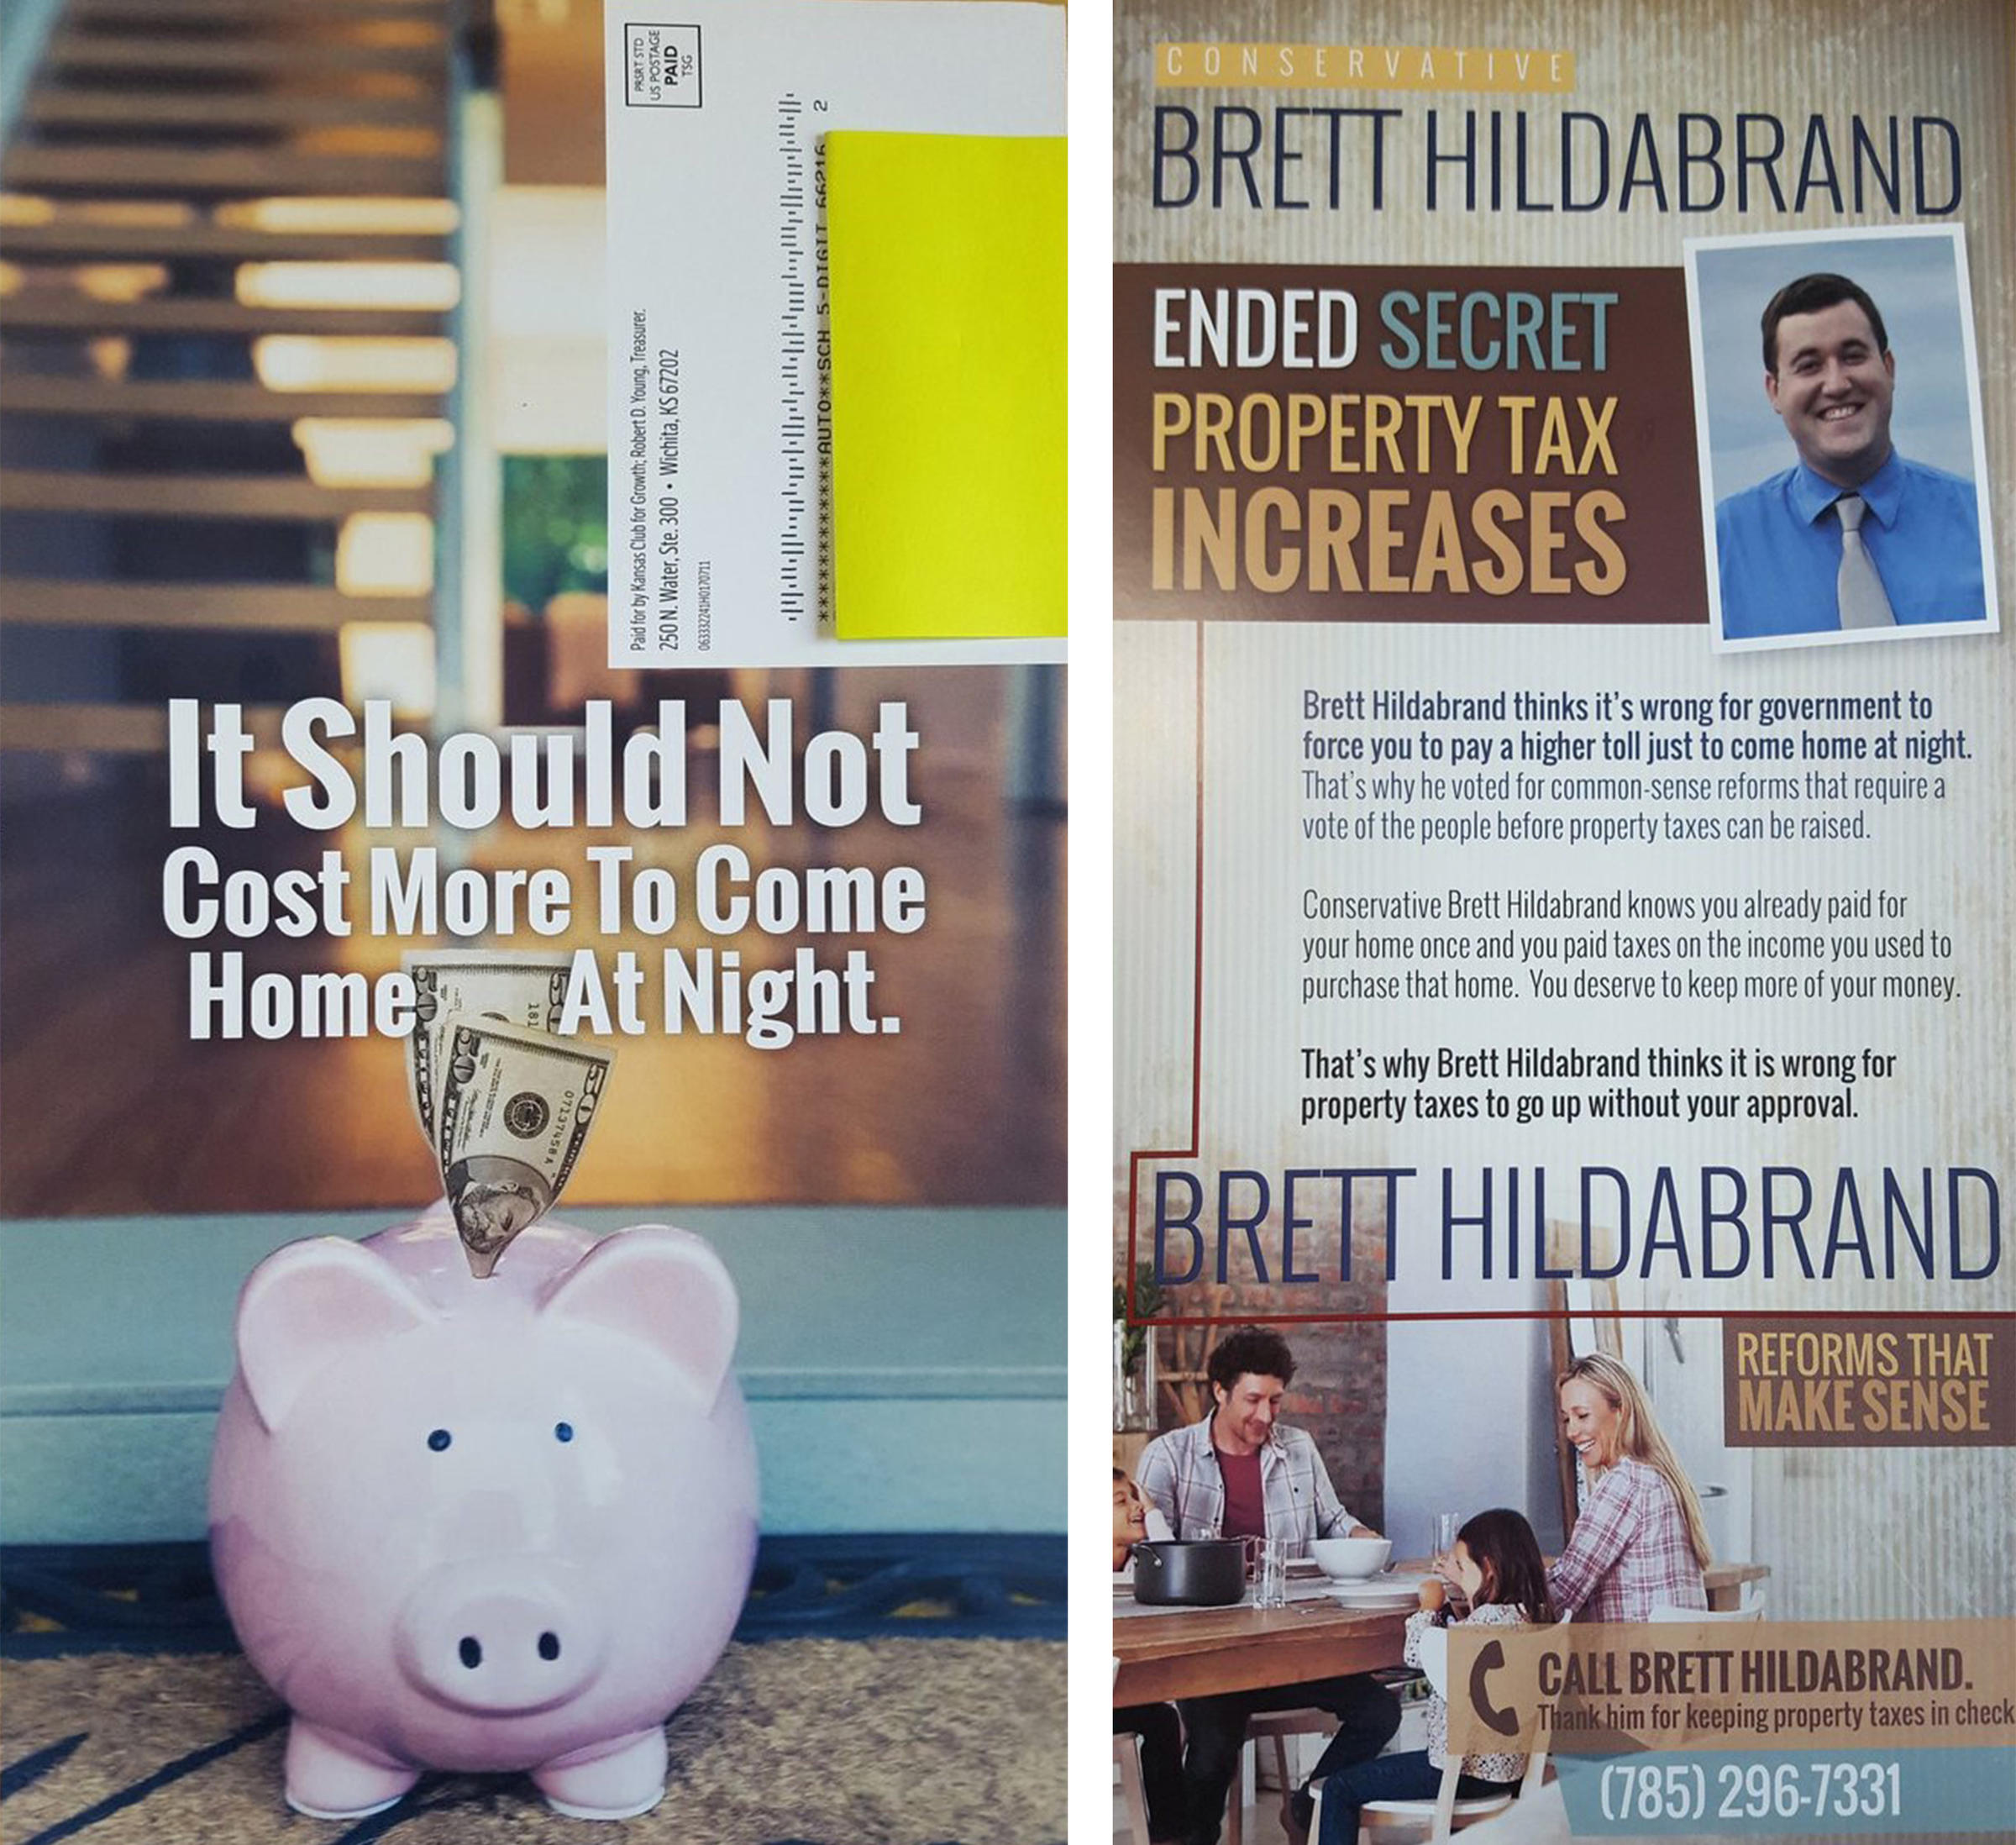 Kansas johnson county real estate taxes - A Postcard Sent By Kansas Club For Growth In Support Of Incumbent Johnson County Rep Brett Hildabrand References Secret Property Tax Increases